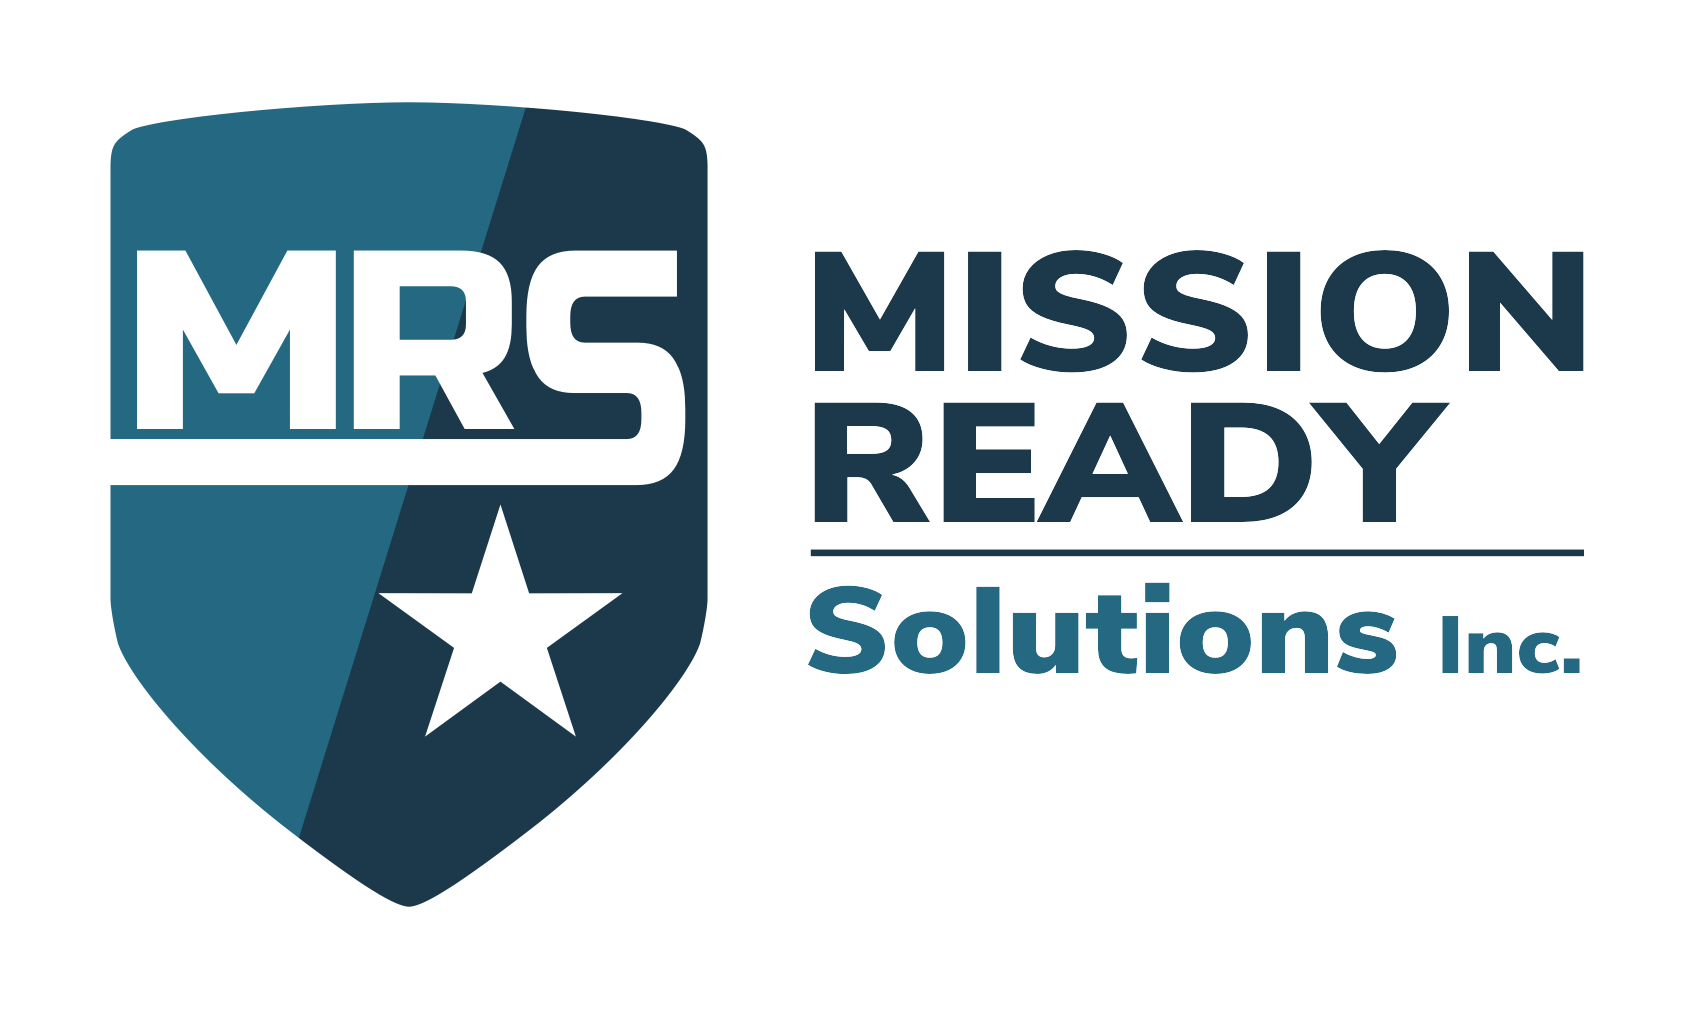 Mission Ready Announces CAD $5,500,000 in New Orders, Investor Call, Filings Update